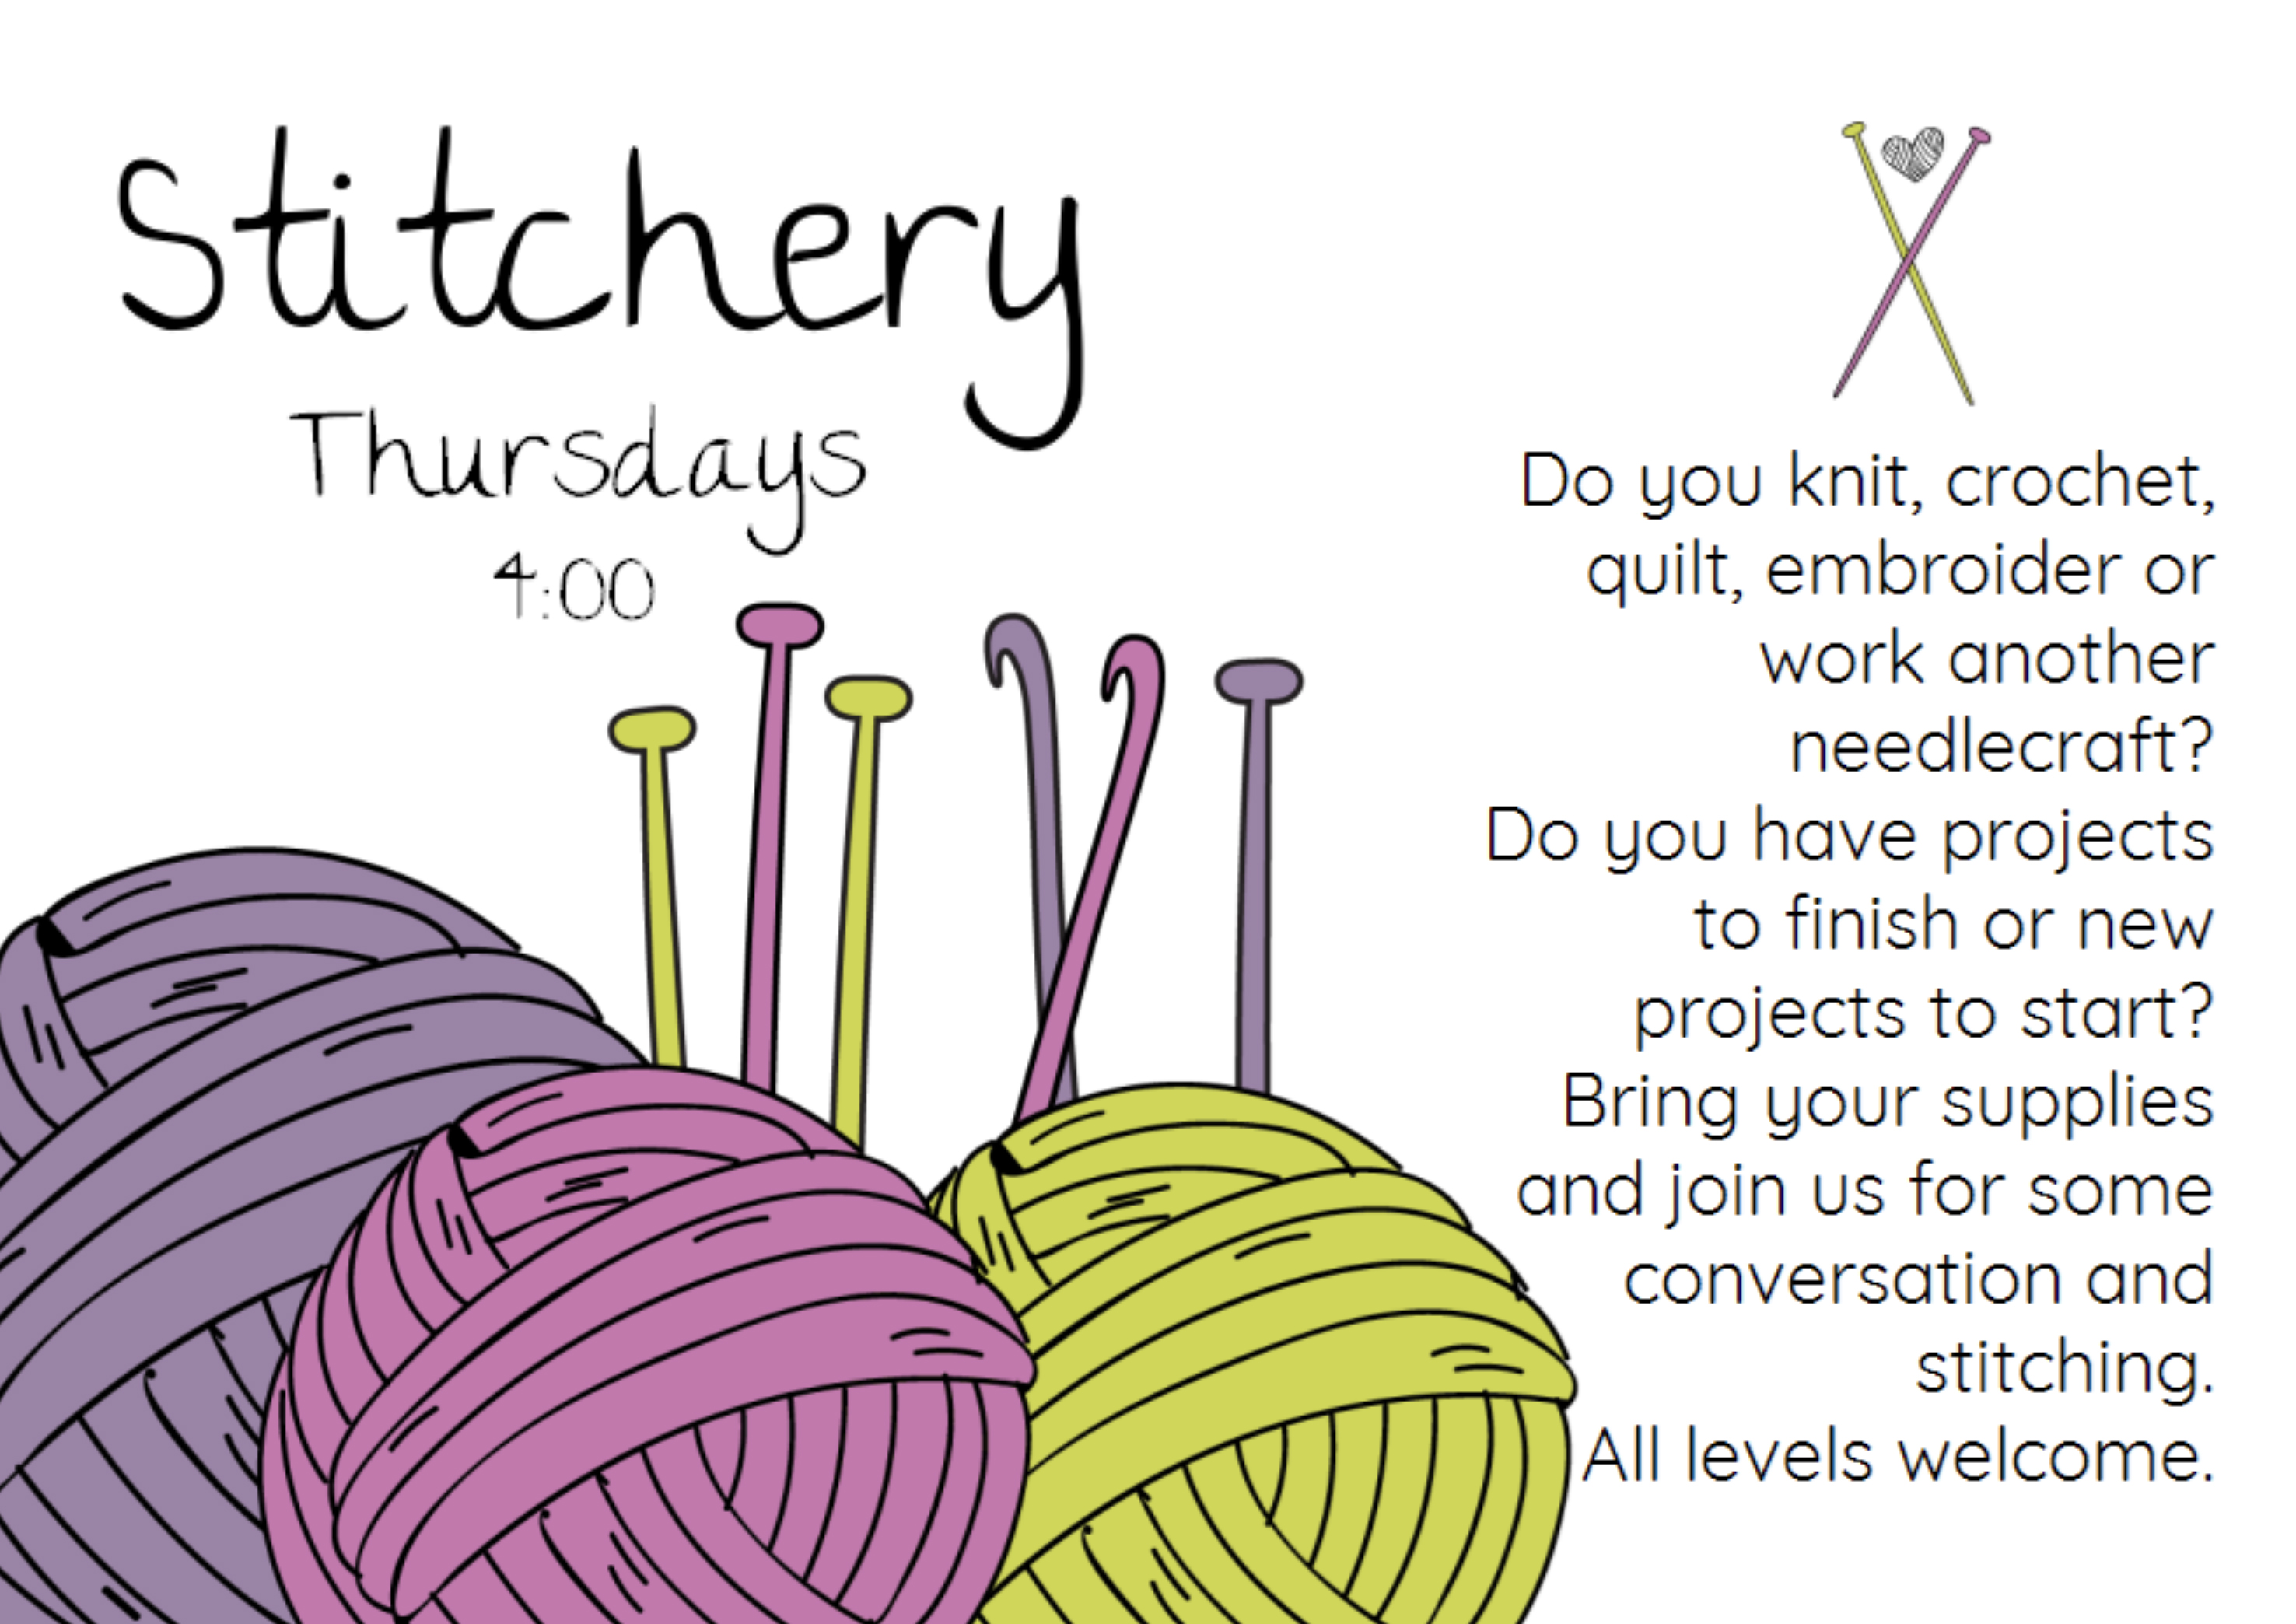 Stitchery Thurs 4